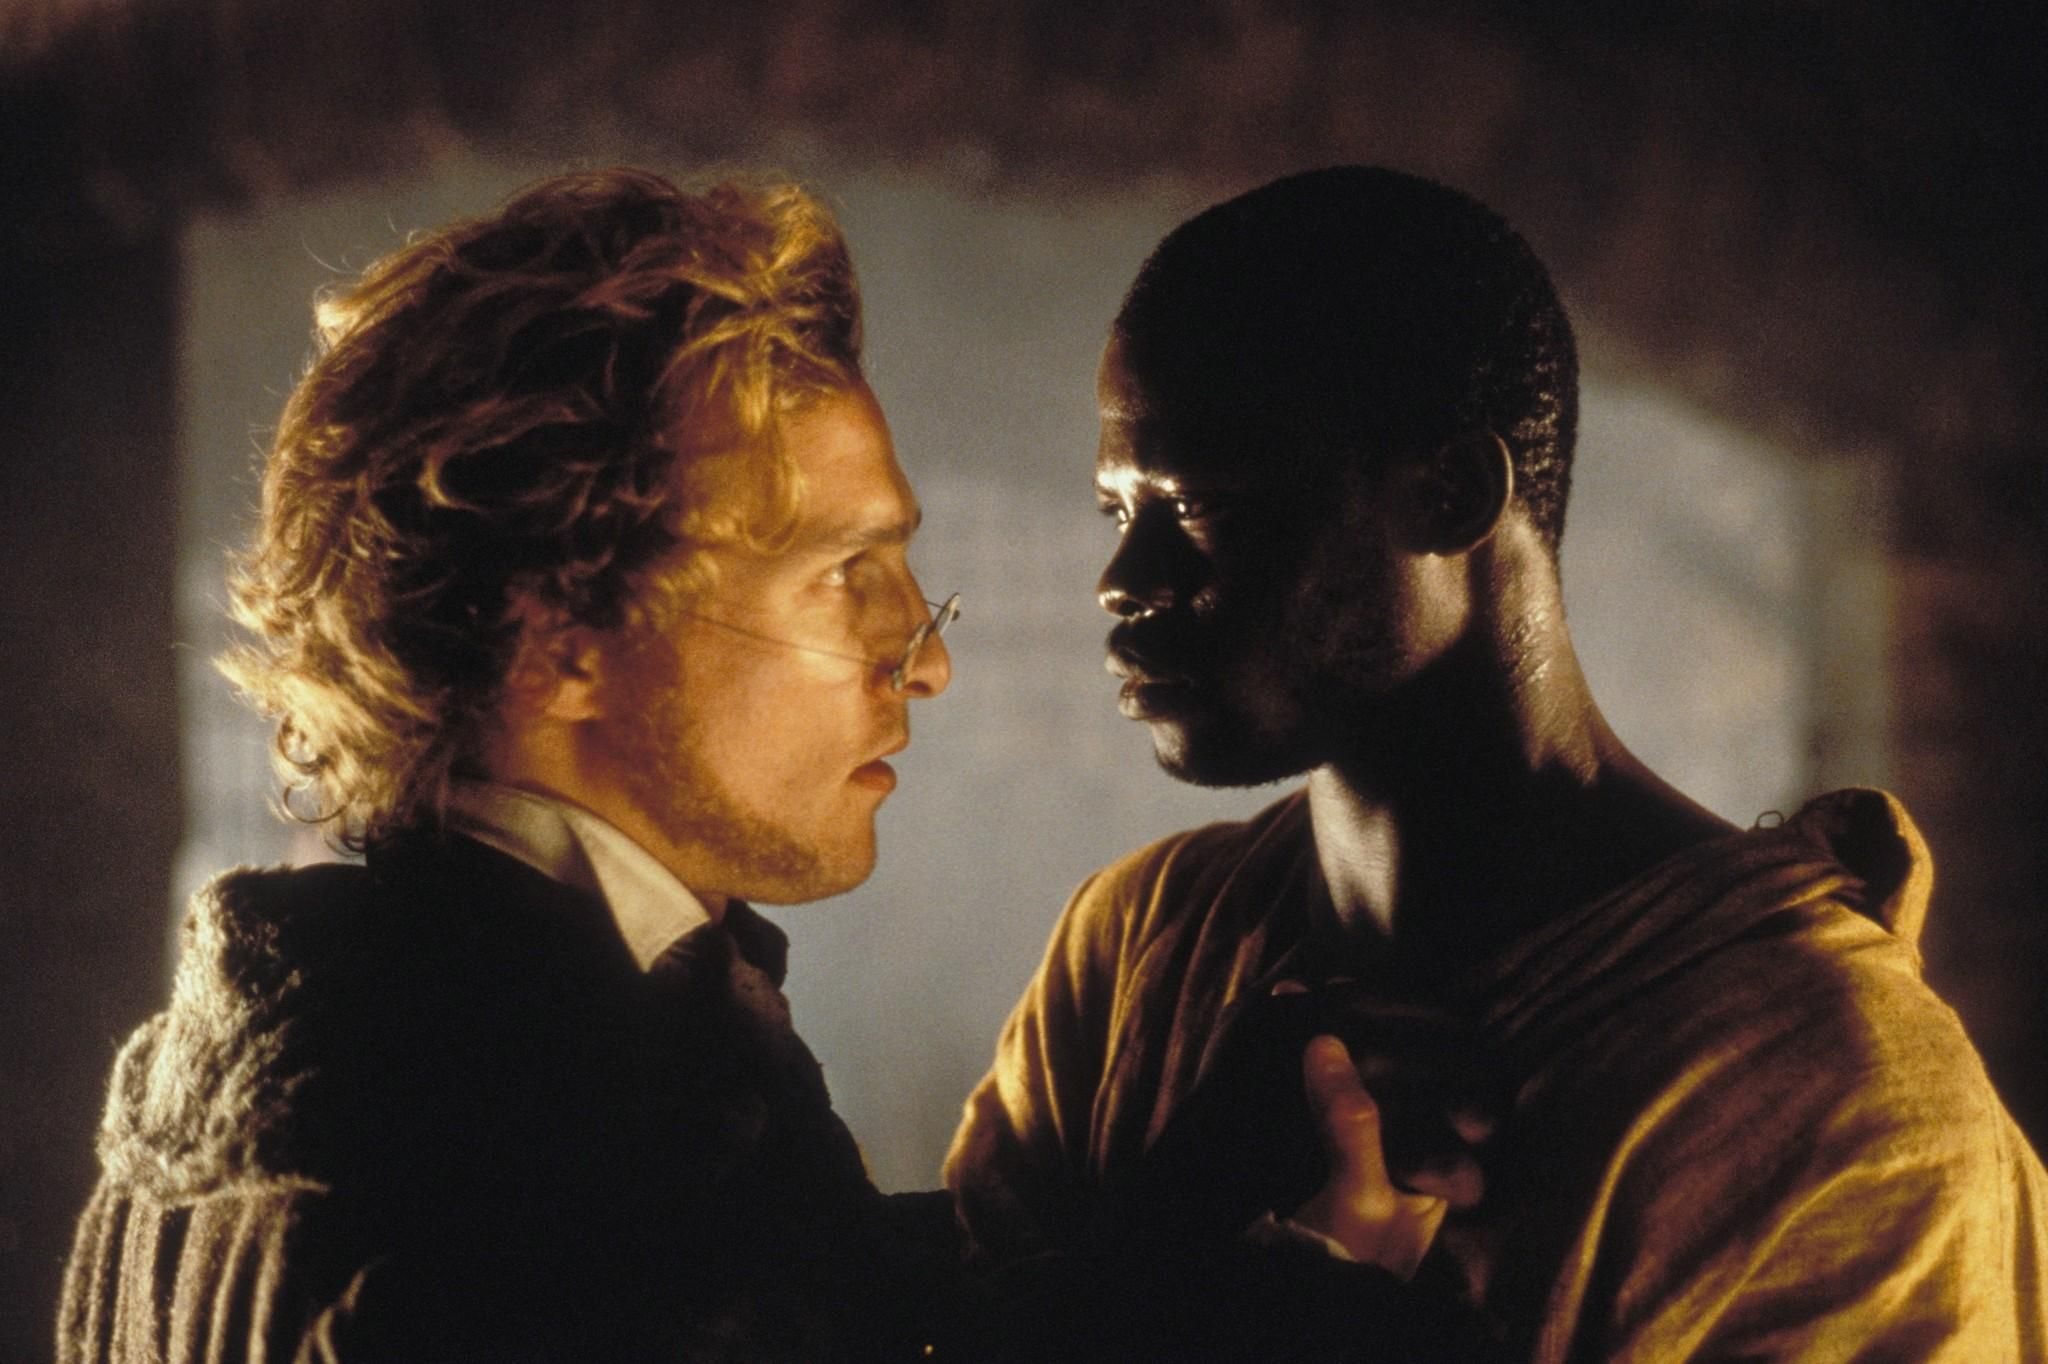 an analysis of the horror of slaves in the film amistad by steven spielberg Film analysis: maria full of grace  film) amistad is the name of a ship on course from cuba to usa and it is carrying the cargo of  steven spielberg's.